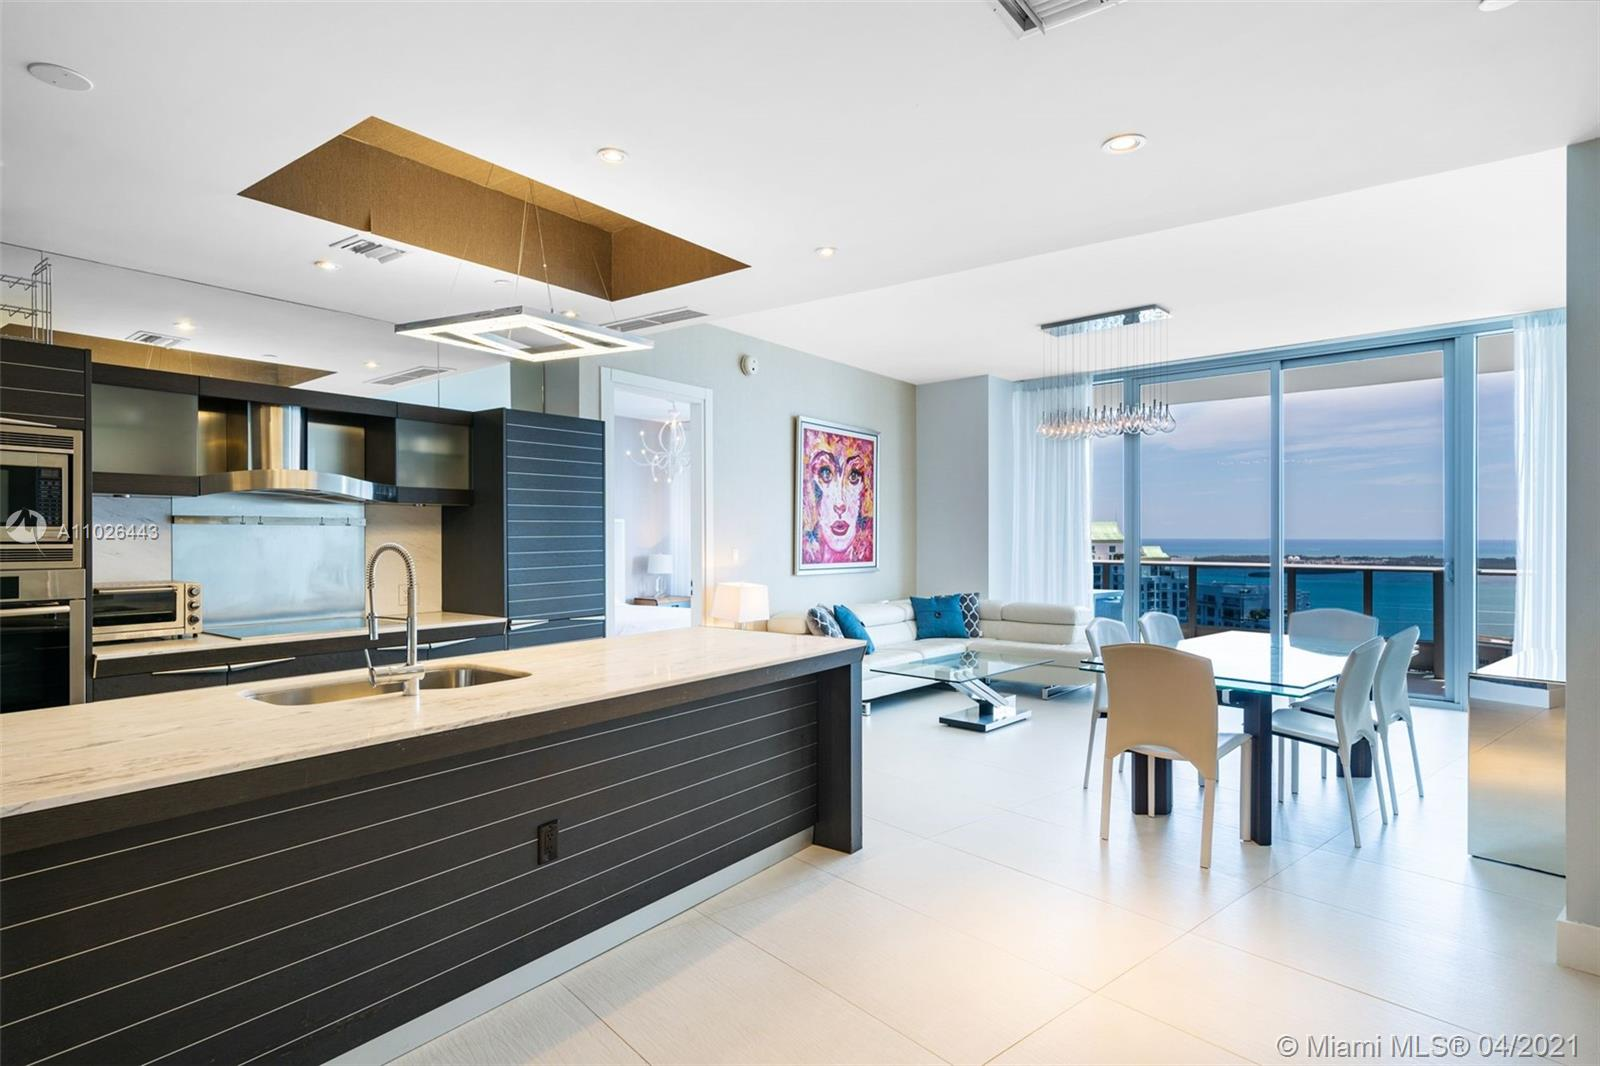 """RENTED until 06/22 FOR $8500. 2 beds + enclosed Den +2.5 baths + additional Storage unit. Turn-key unit in pristine condition with unobstructed and majestic views of the Biscayne Bay and the Atlantic Ocean. Located in the heart of Brickell, where the Miami River meets the bay, within walking distance to upscale shopping, fine dining and entertainment. Epic amenities includes 2 pools,  poolside cabanas, fitness center, Exhale spa, public marina and bar along with ZUMA Restaurant (ground floor) and Area 31 on the pool level. Epic was designed and built by renown developer  Ugo Colombo & Lionstone Development and the units feature floor-to-ceiling glass windows, Bosch washer & dryer, custom lighting, Italian doors and hardware, Snaidero """"Time"""" cabinetry, Miele Appliances and Sub-Zero fridge."""